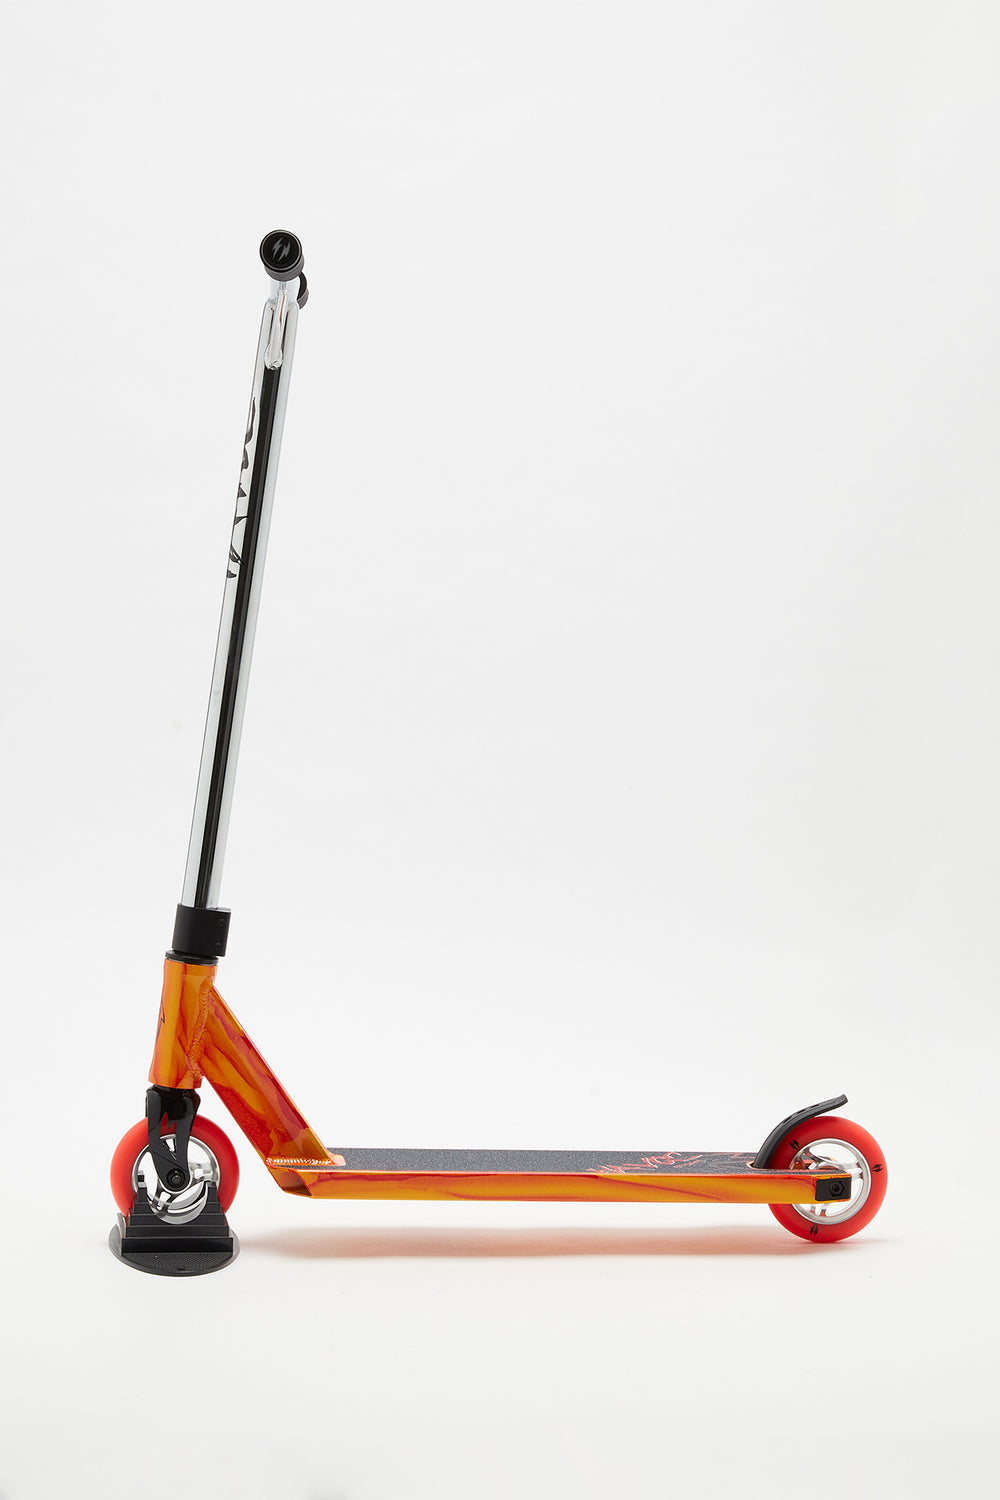 Havoc Storm Silver and Orange Scooter Orange